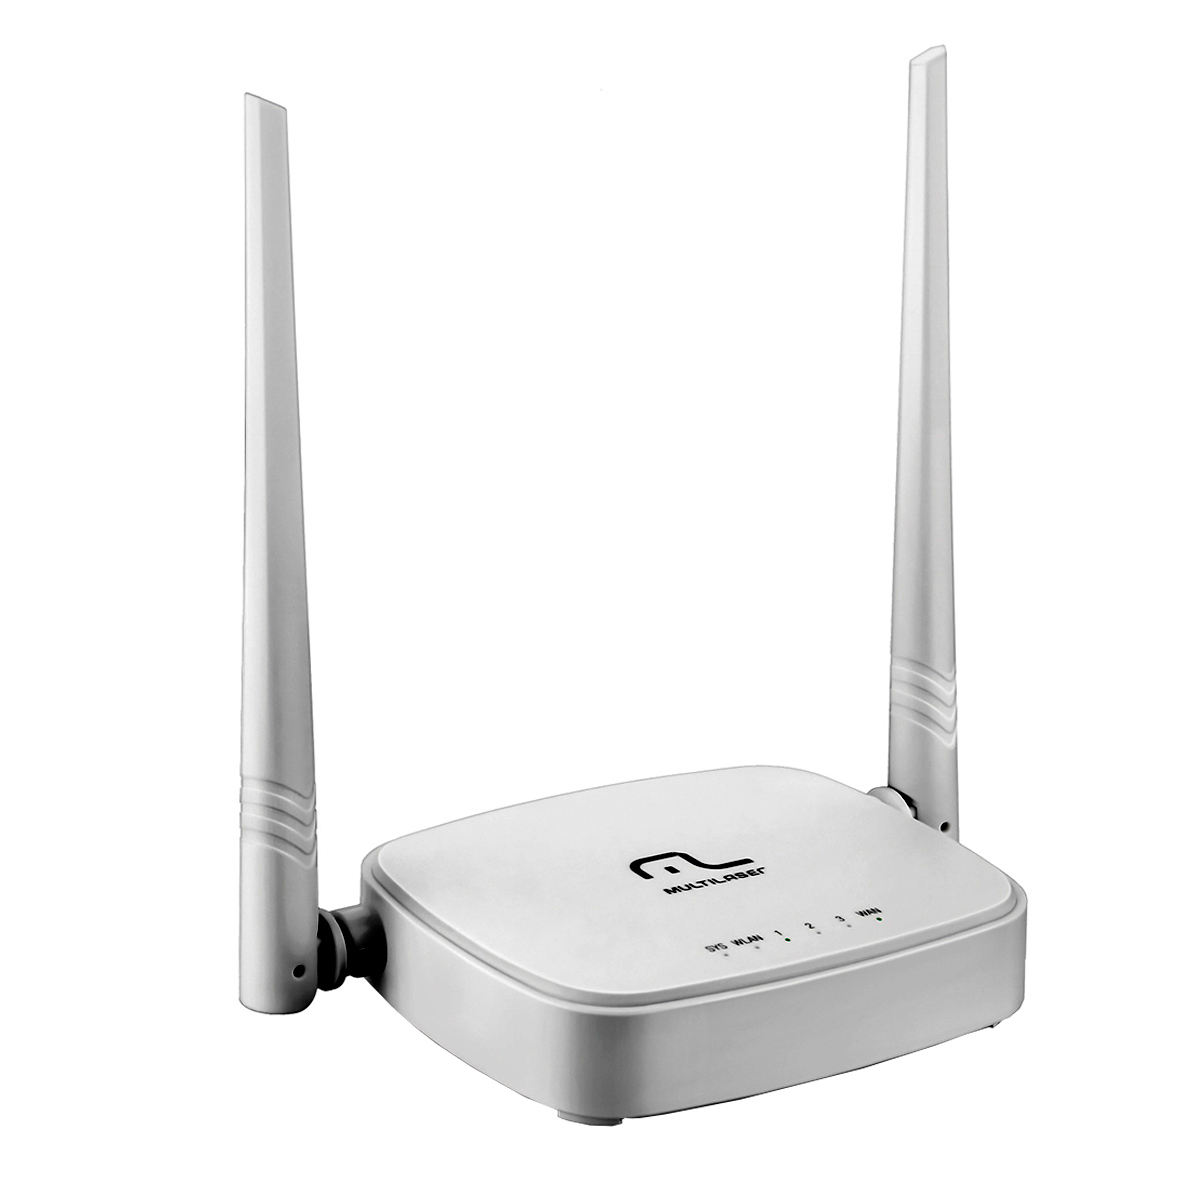 RE160 - Roteador Wireless 300Mbps 2 Antenas Re 160 - Multilaser